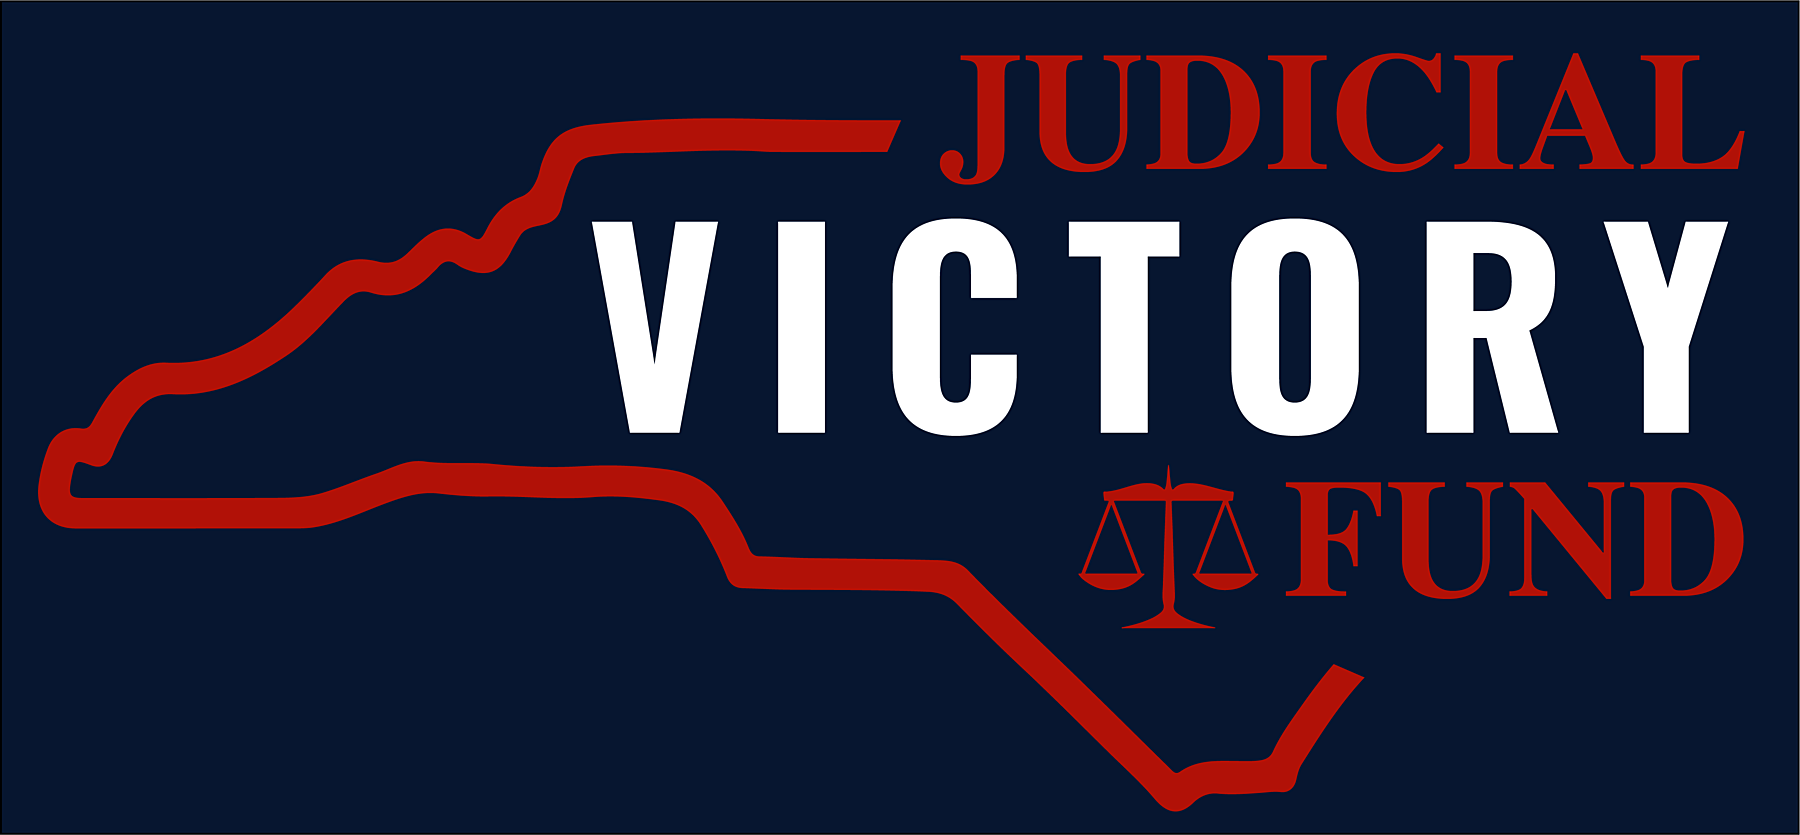 North Carolina Republican Party: Judicial Victory Fund